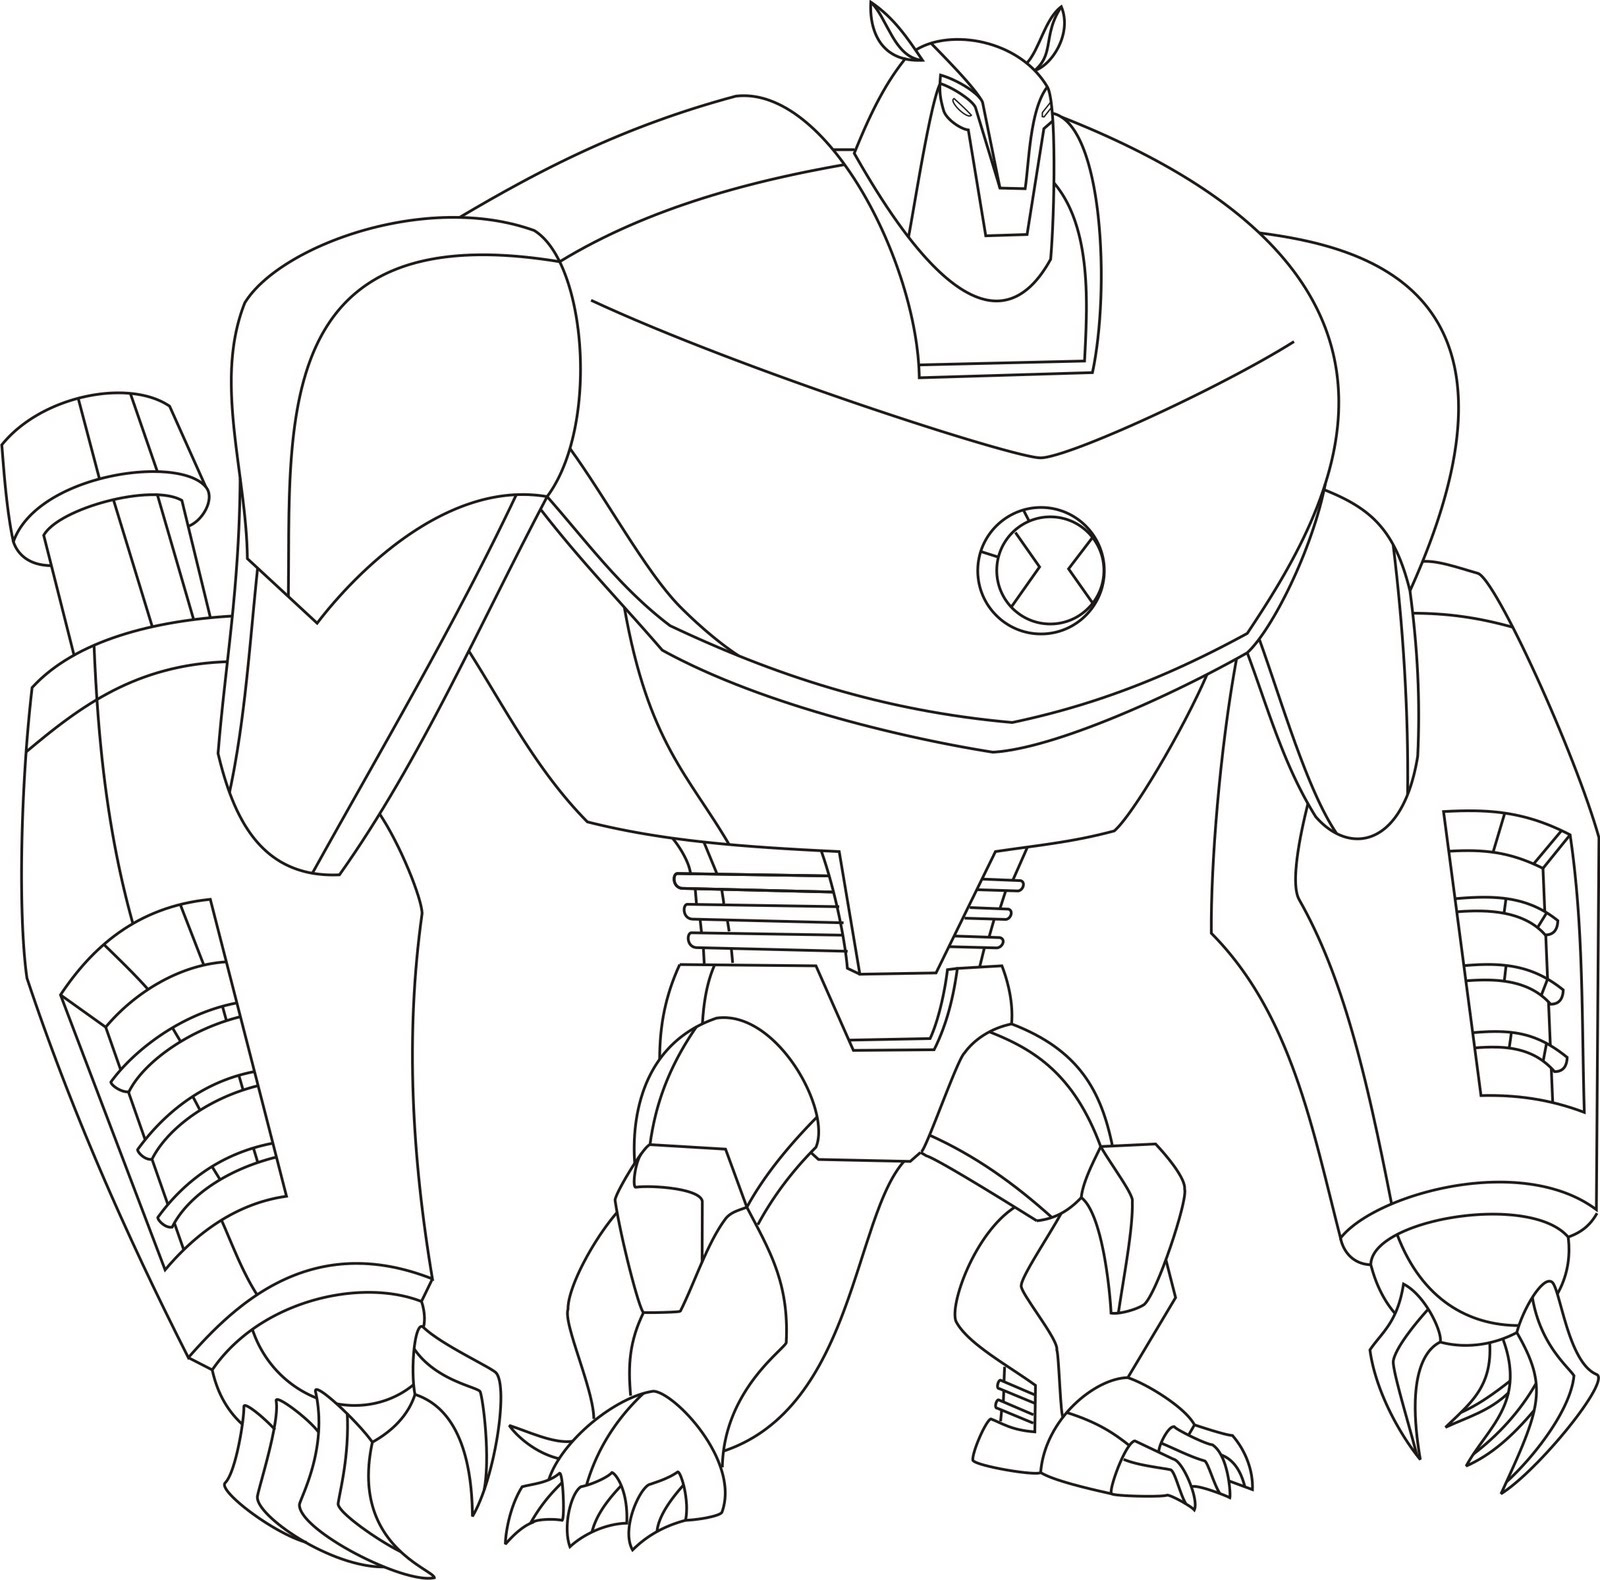 Free Ben 10 Omniverse Coloring Pages, Download Free Clip Art, Free ... | 1580x1600